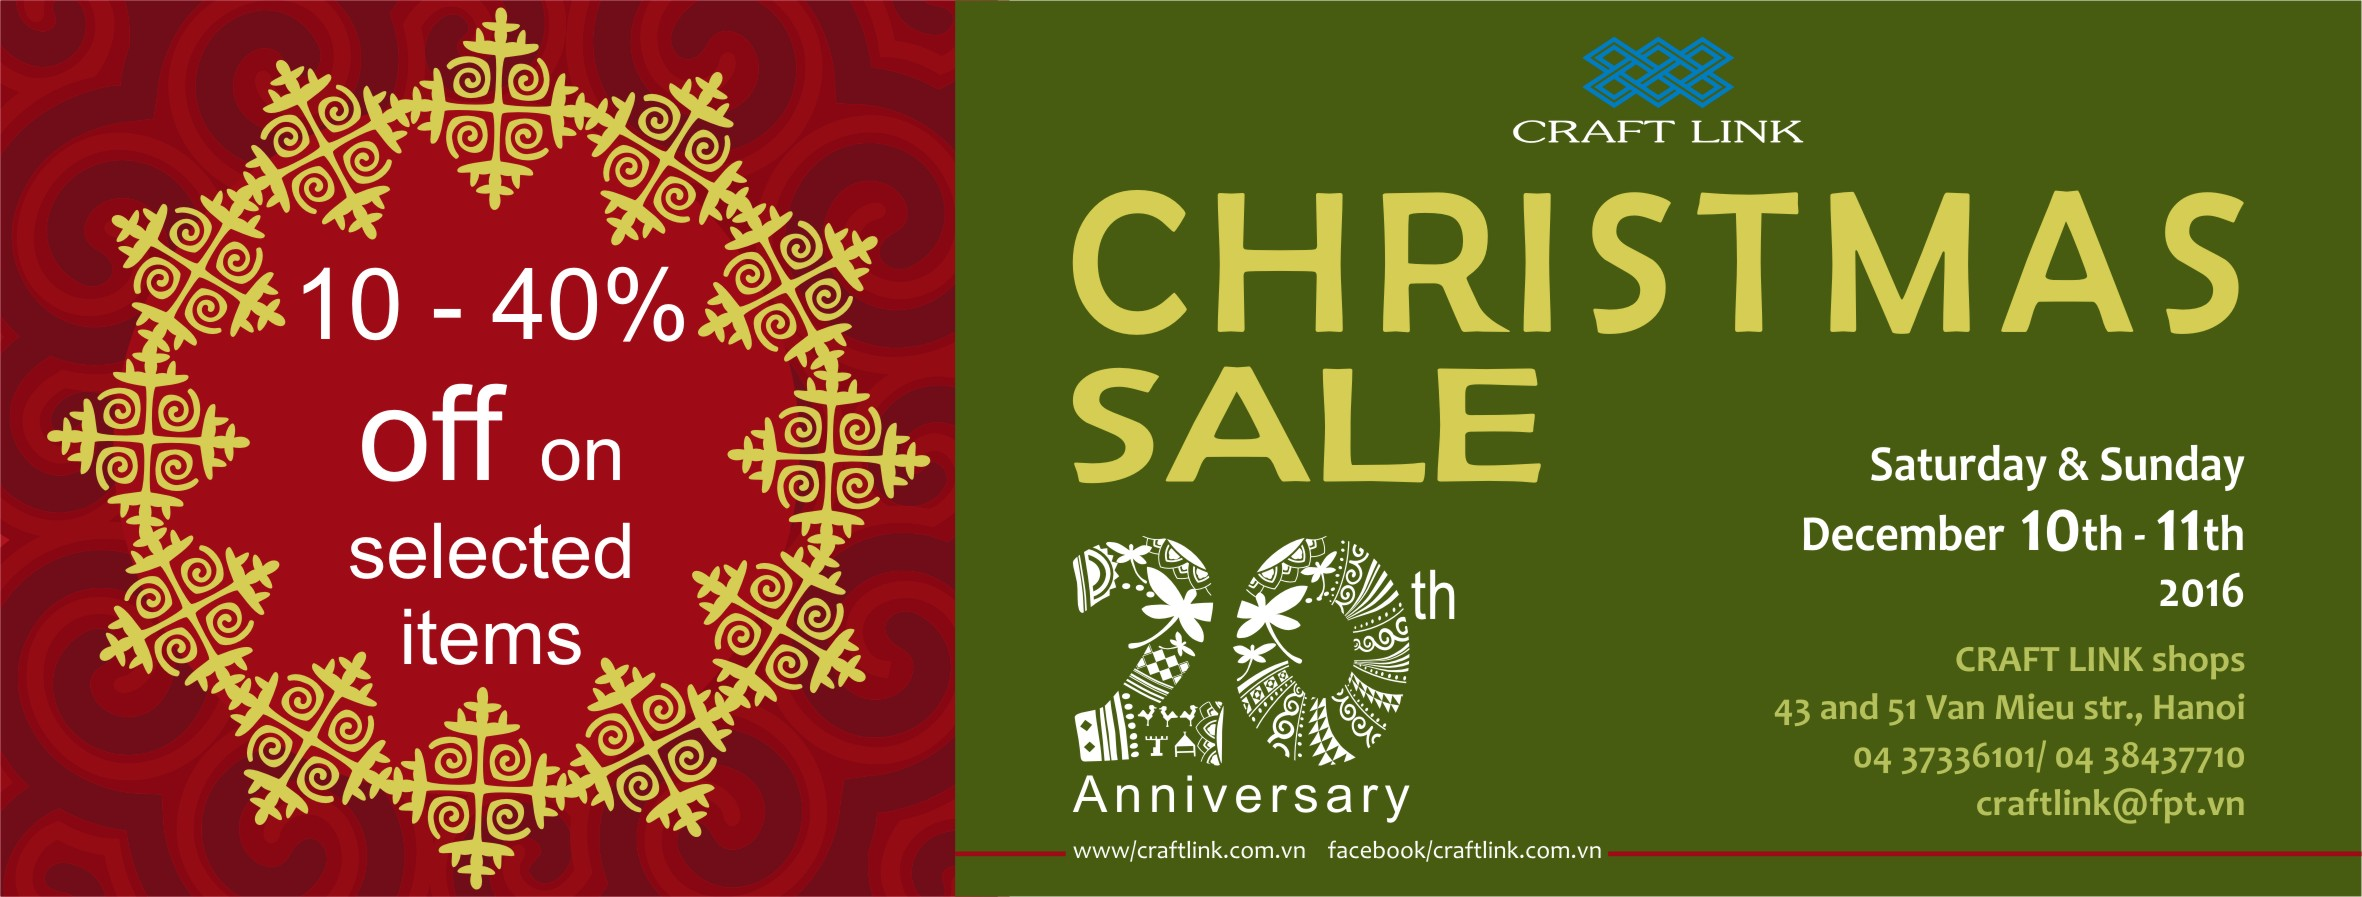 CRAFT LINK CHRISTMAS SALE !